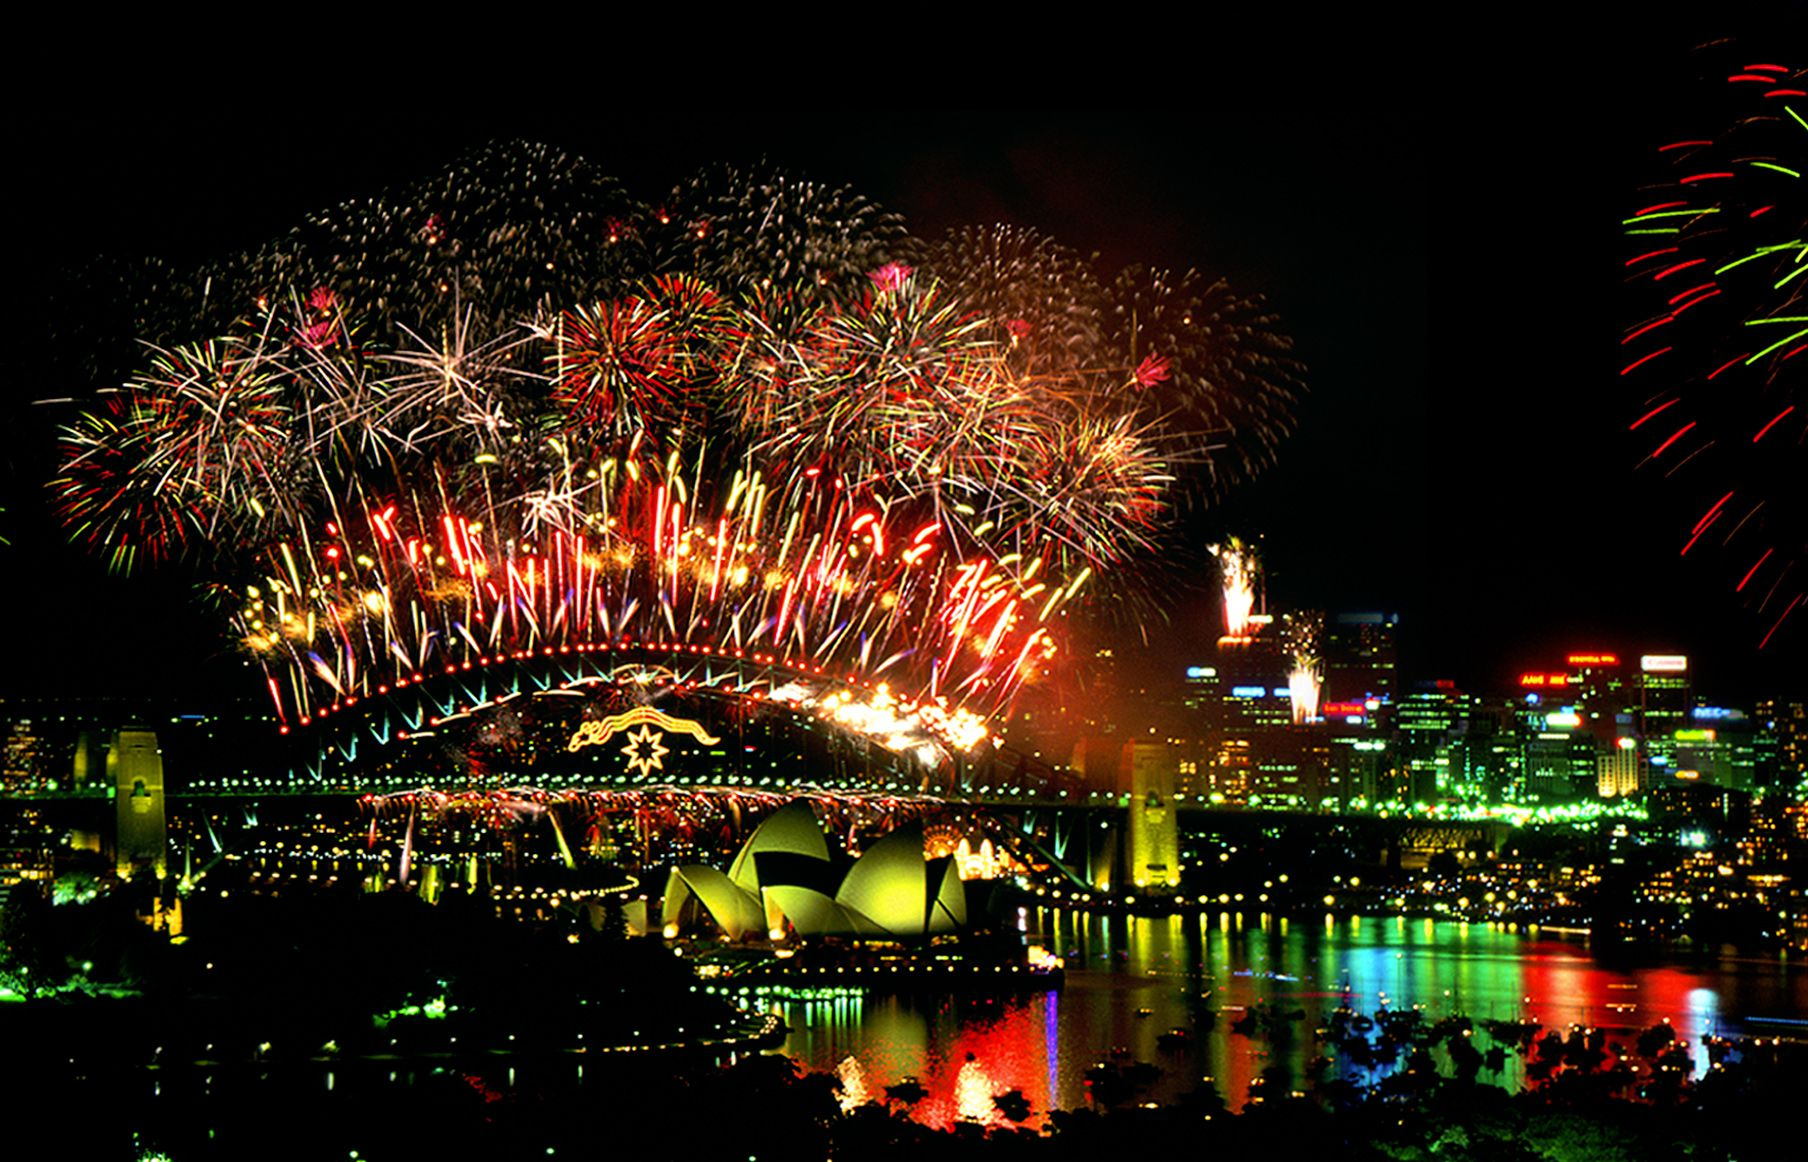 2000 Sydney New Year's Eve Centenary of Federation. In